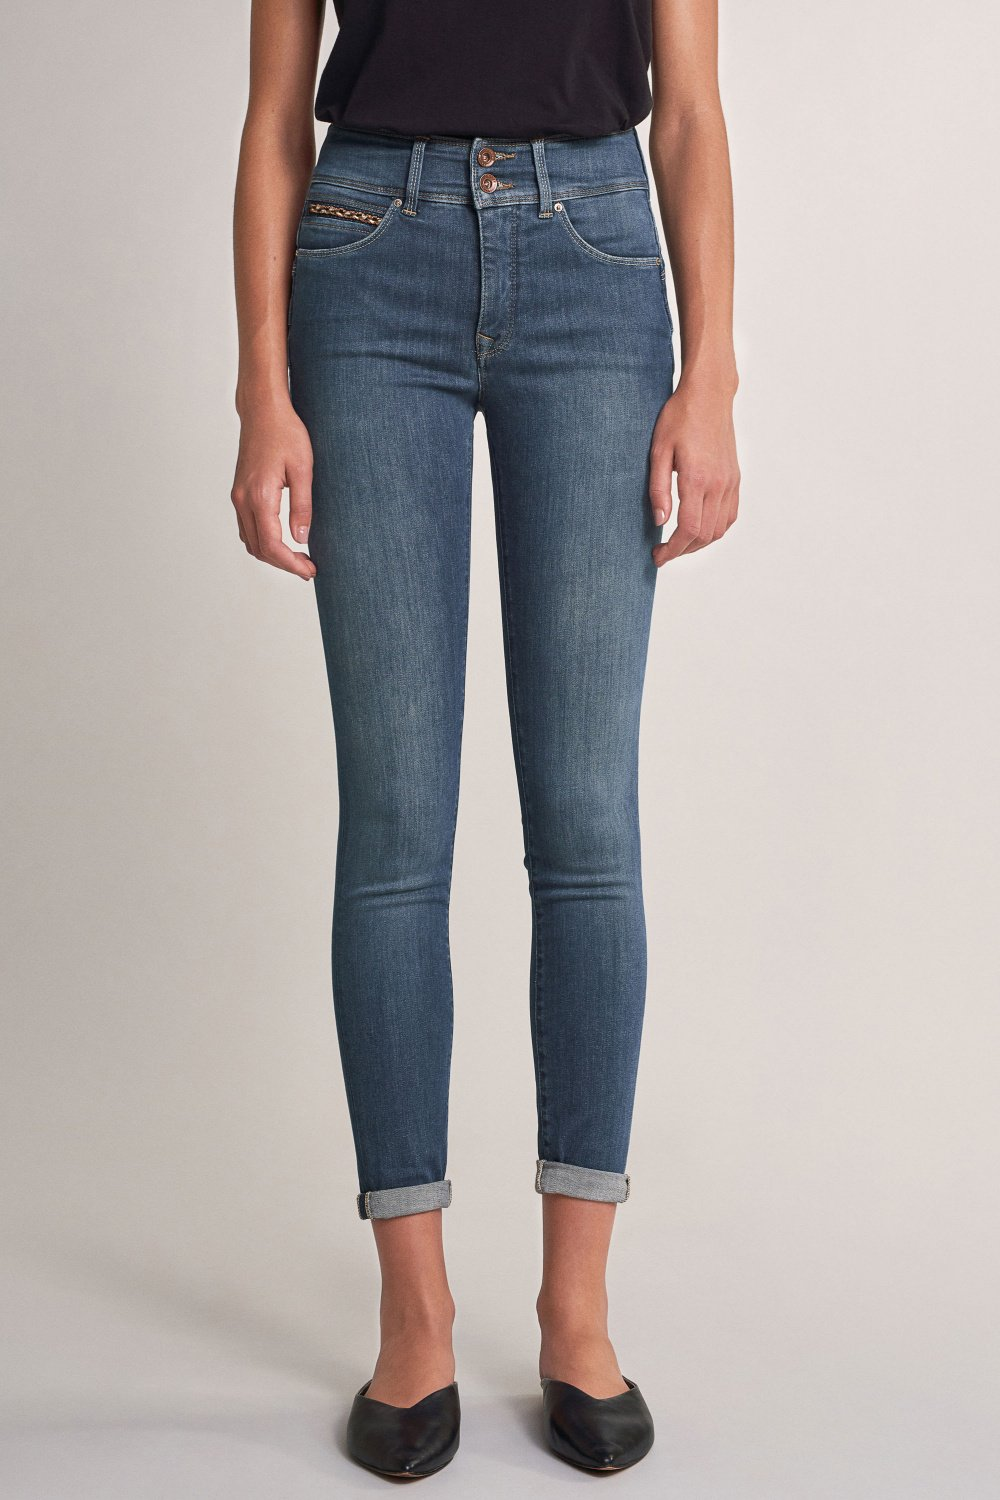 Push In Secret skinny jeans with detail on pocket - Salsa